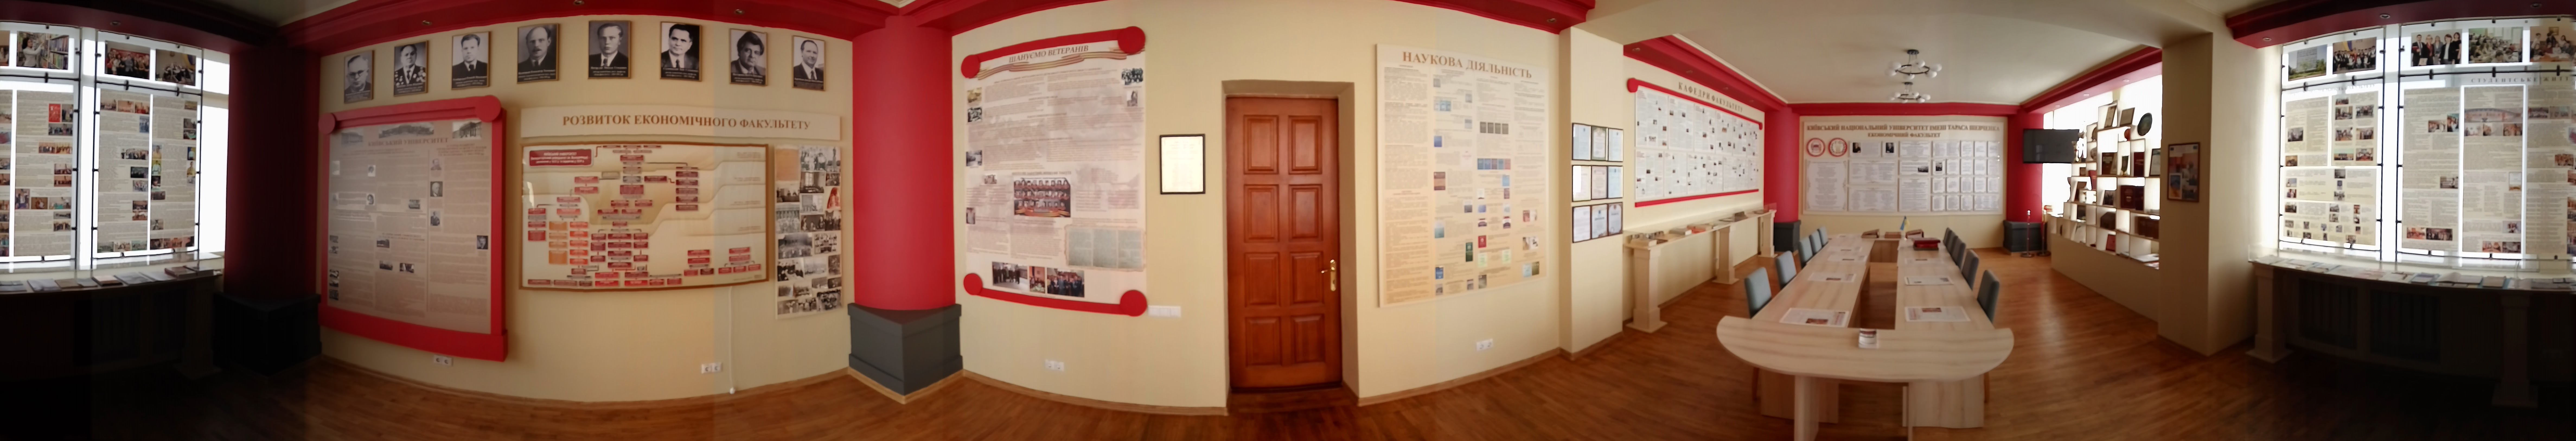 museum history of faculty